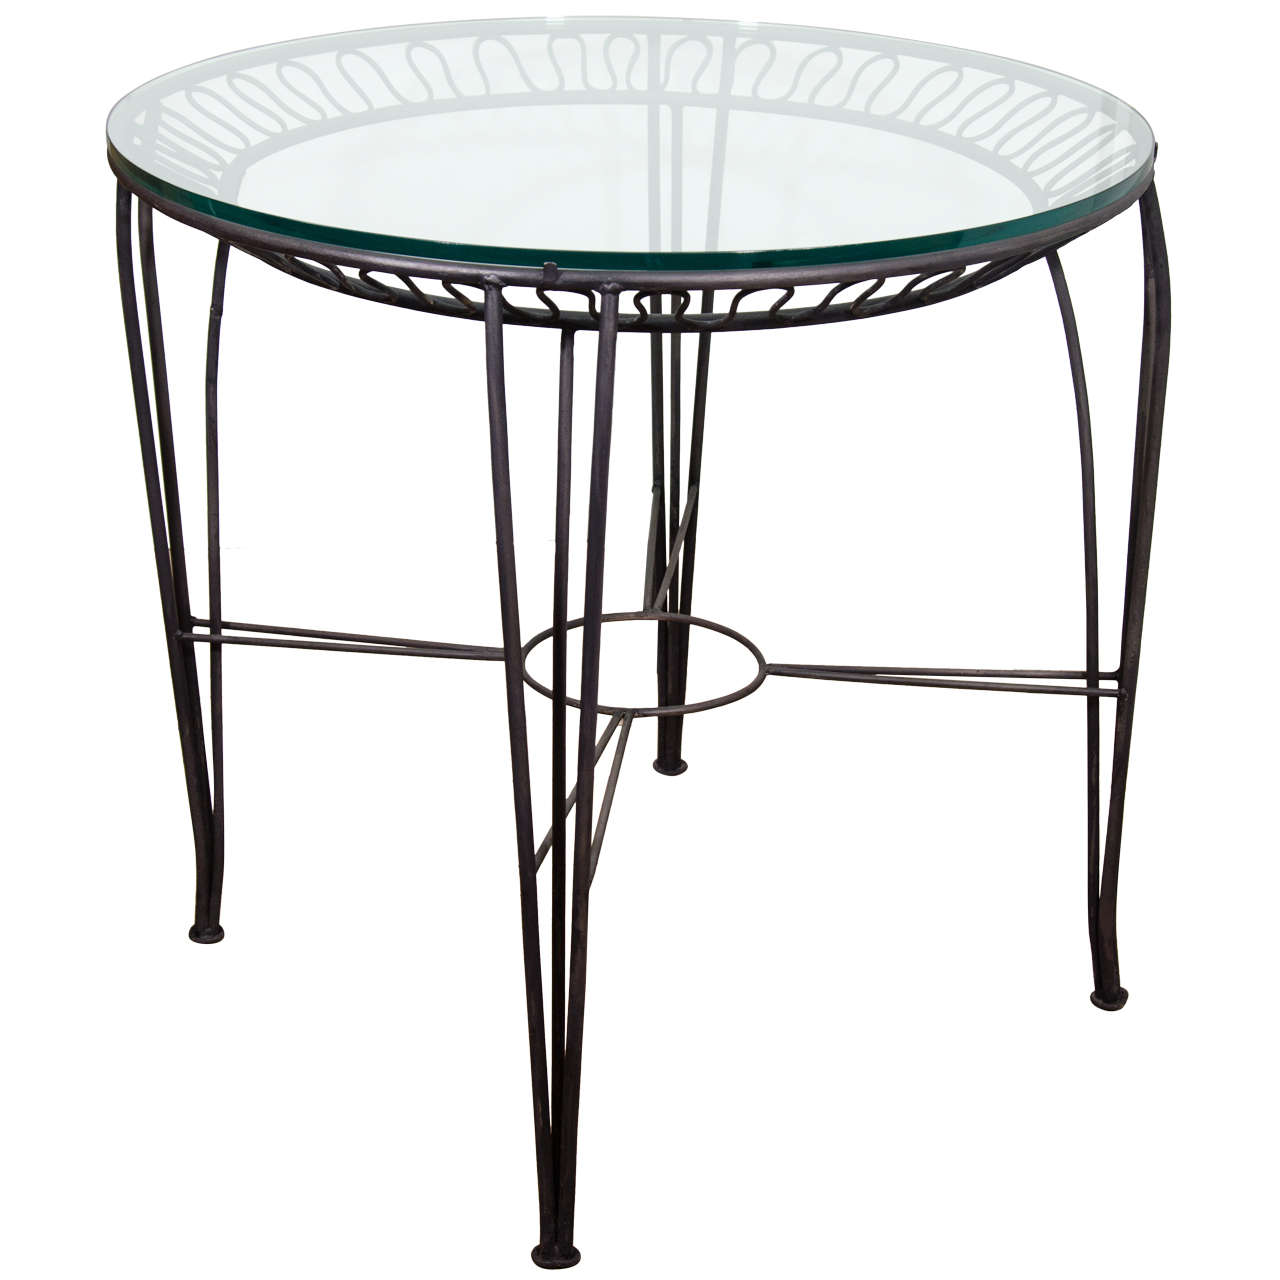 Wrought iron center table at 1stdibs for Furniture centre table